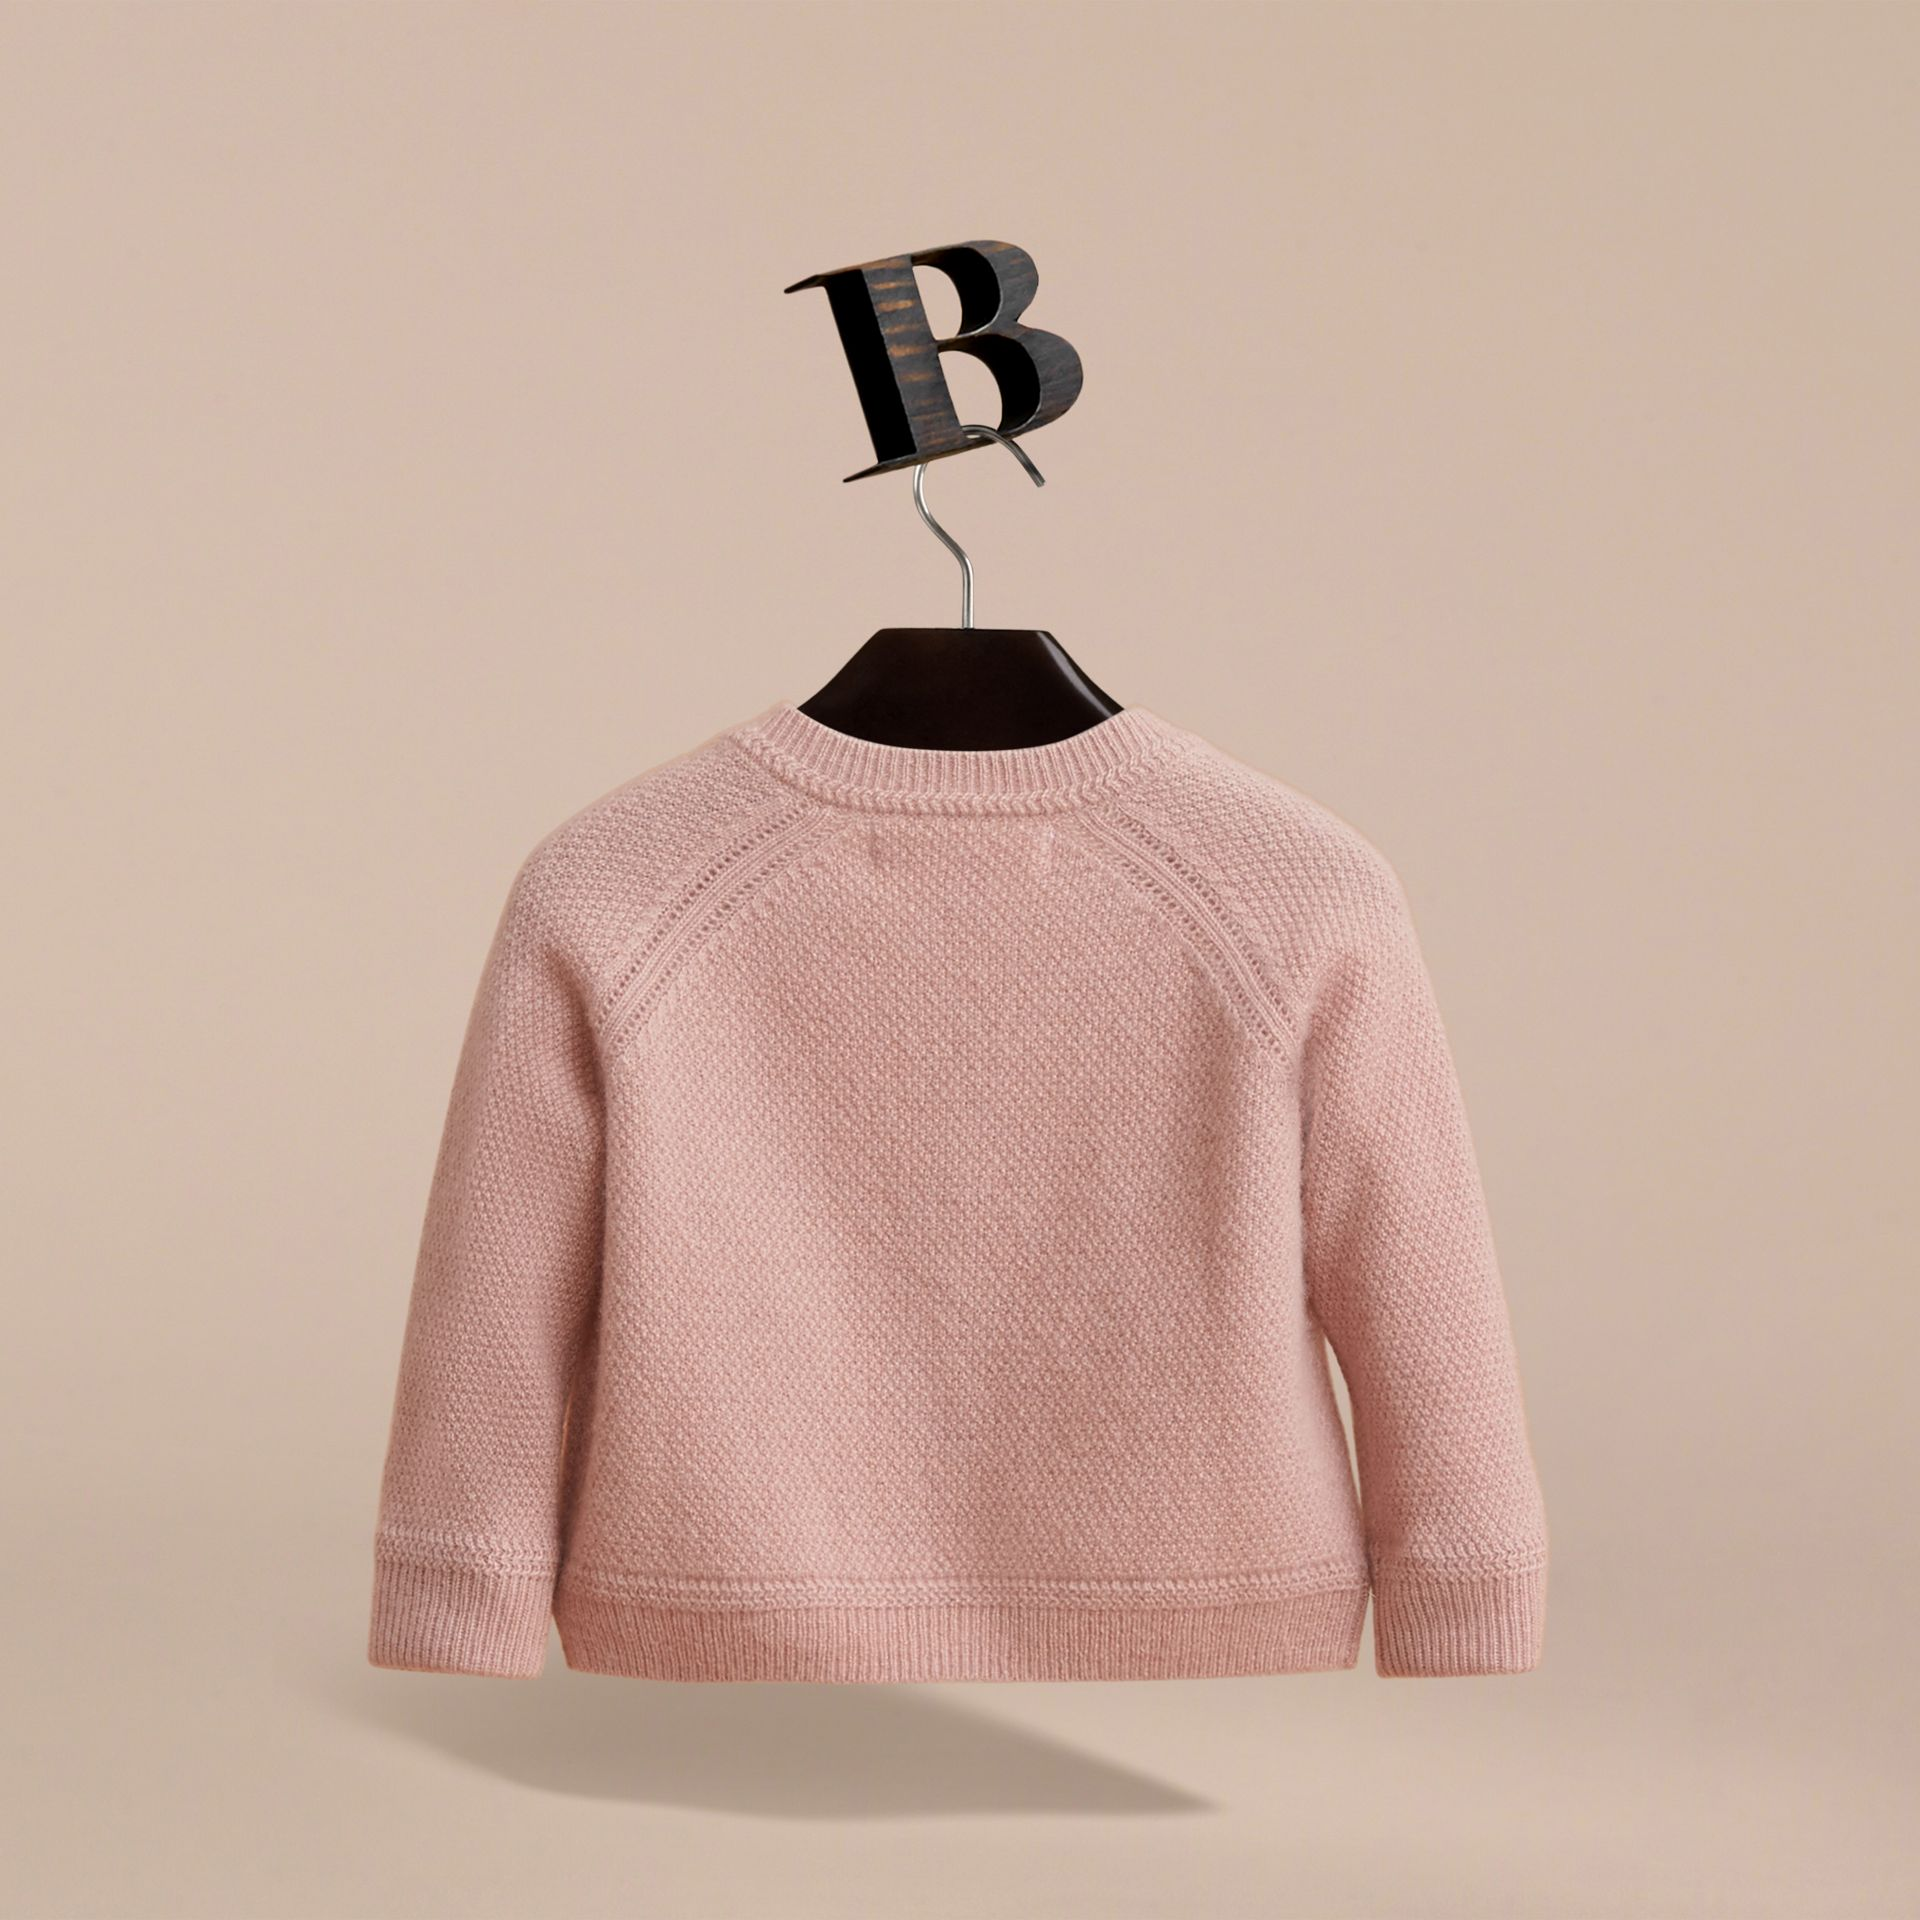 Textured Knit Cashmere Cardigan in Dusty Pink | Burberry - gallery image 4